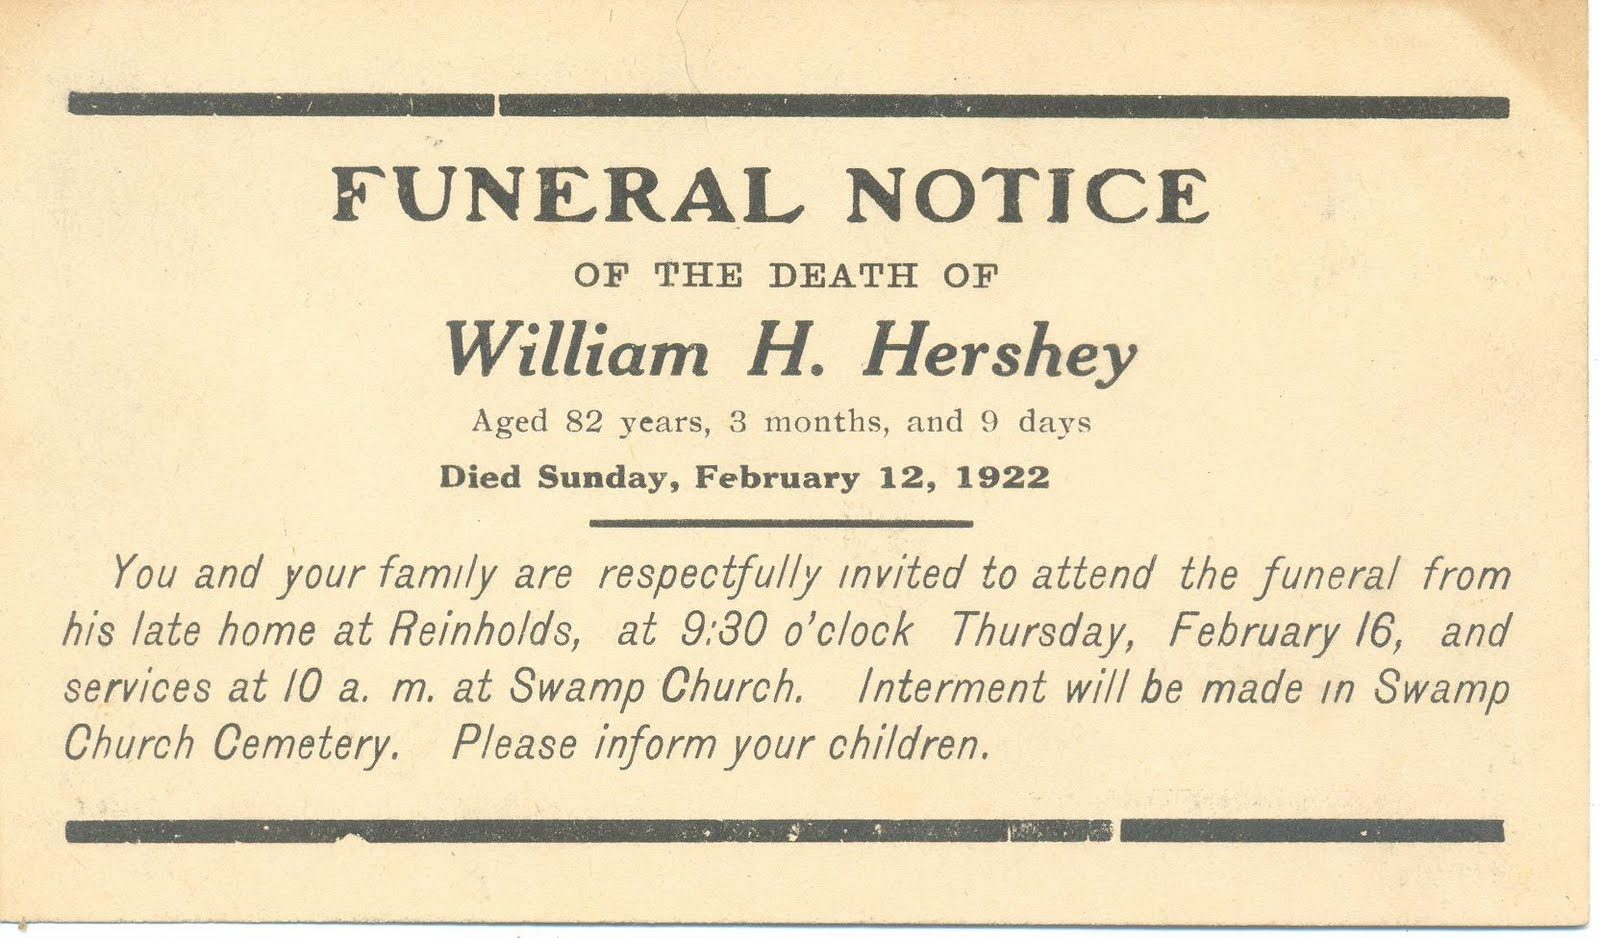 A Land of Deepest Shade Death Memorabilia Part 4 Funeral Notices